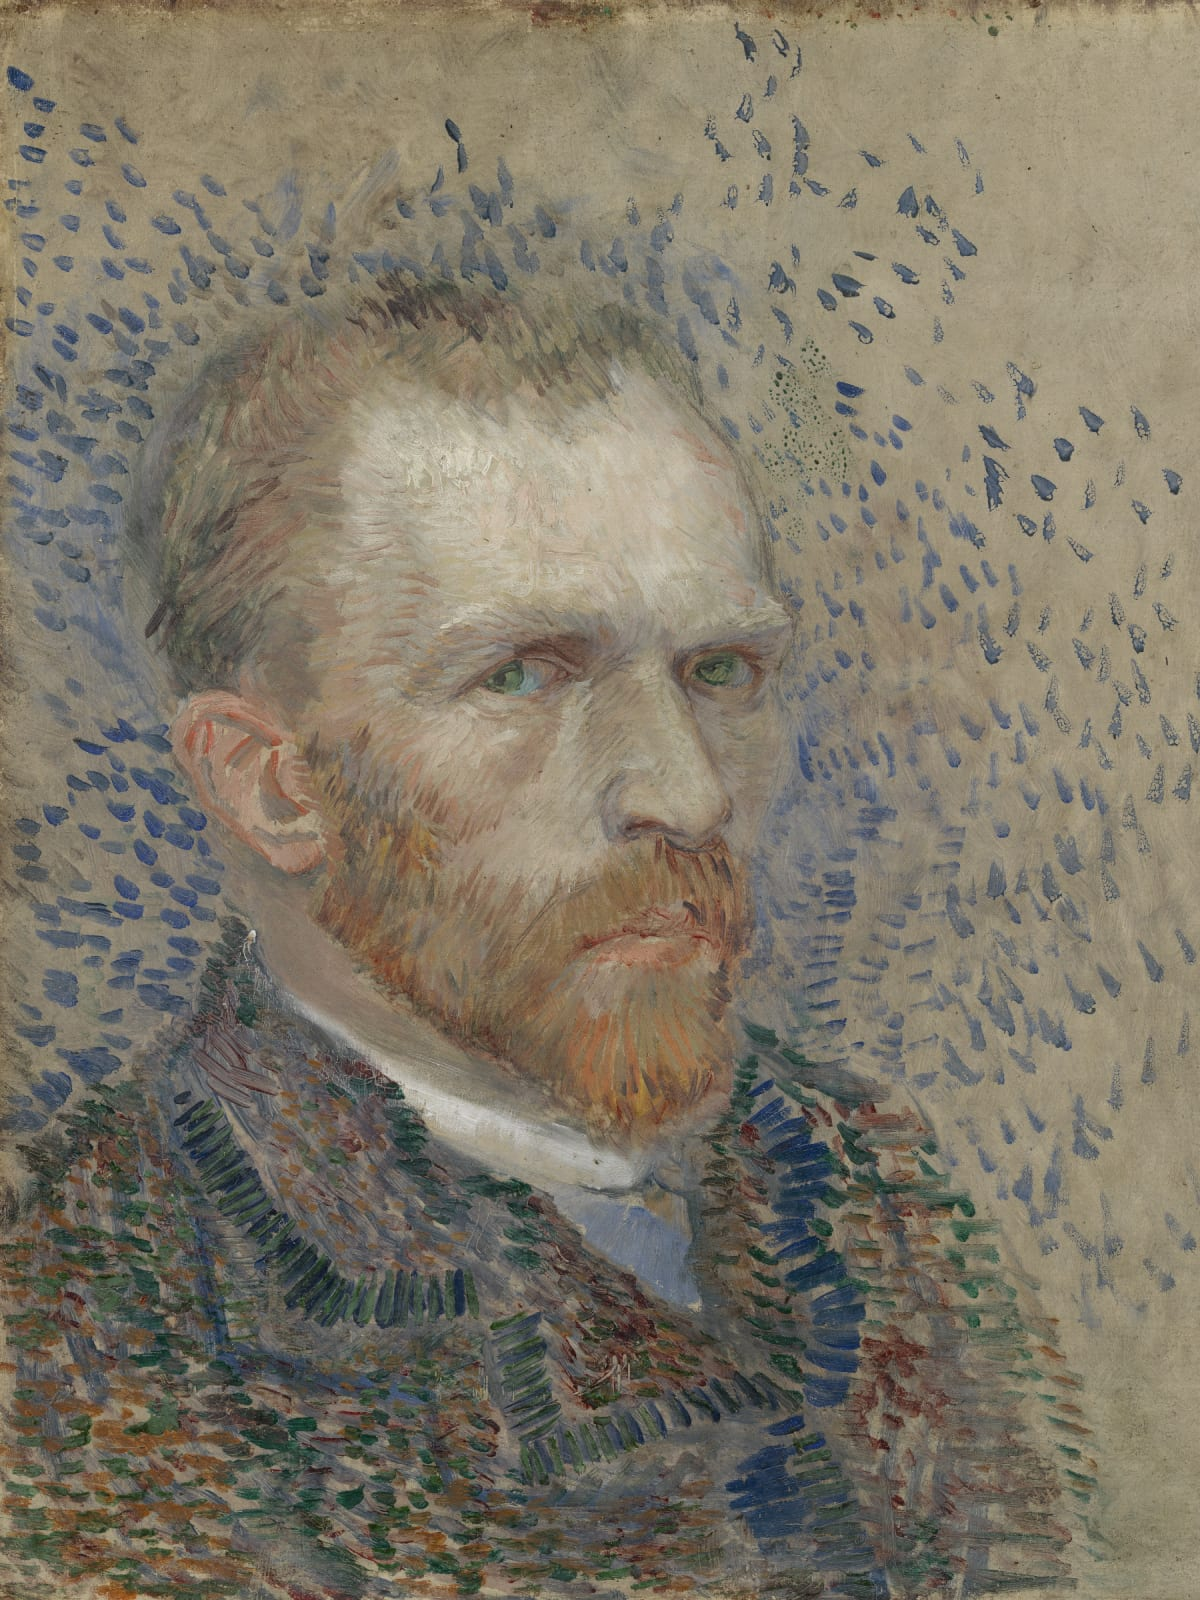 MFAH:Vincent van Gogh: His Life in Art, Self-Portrait